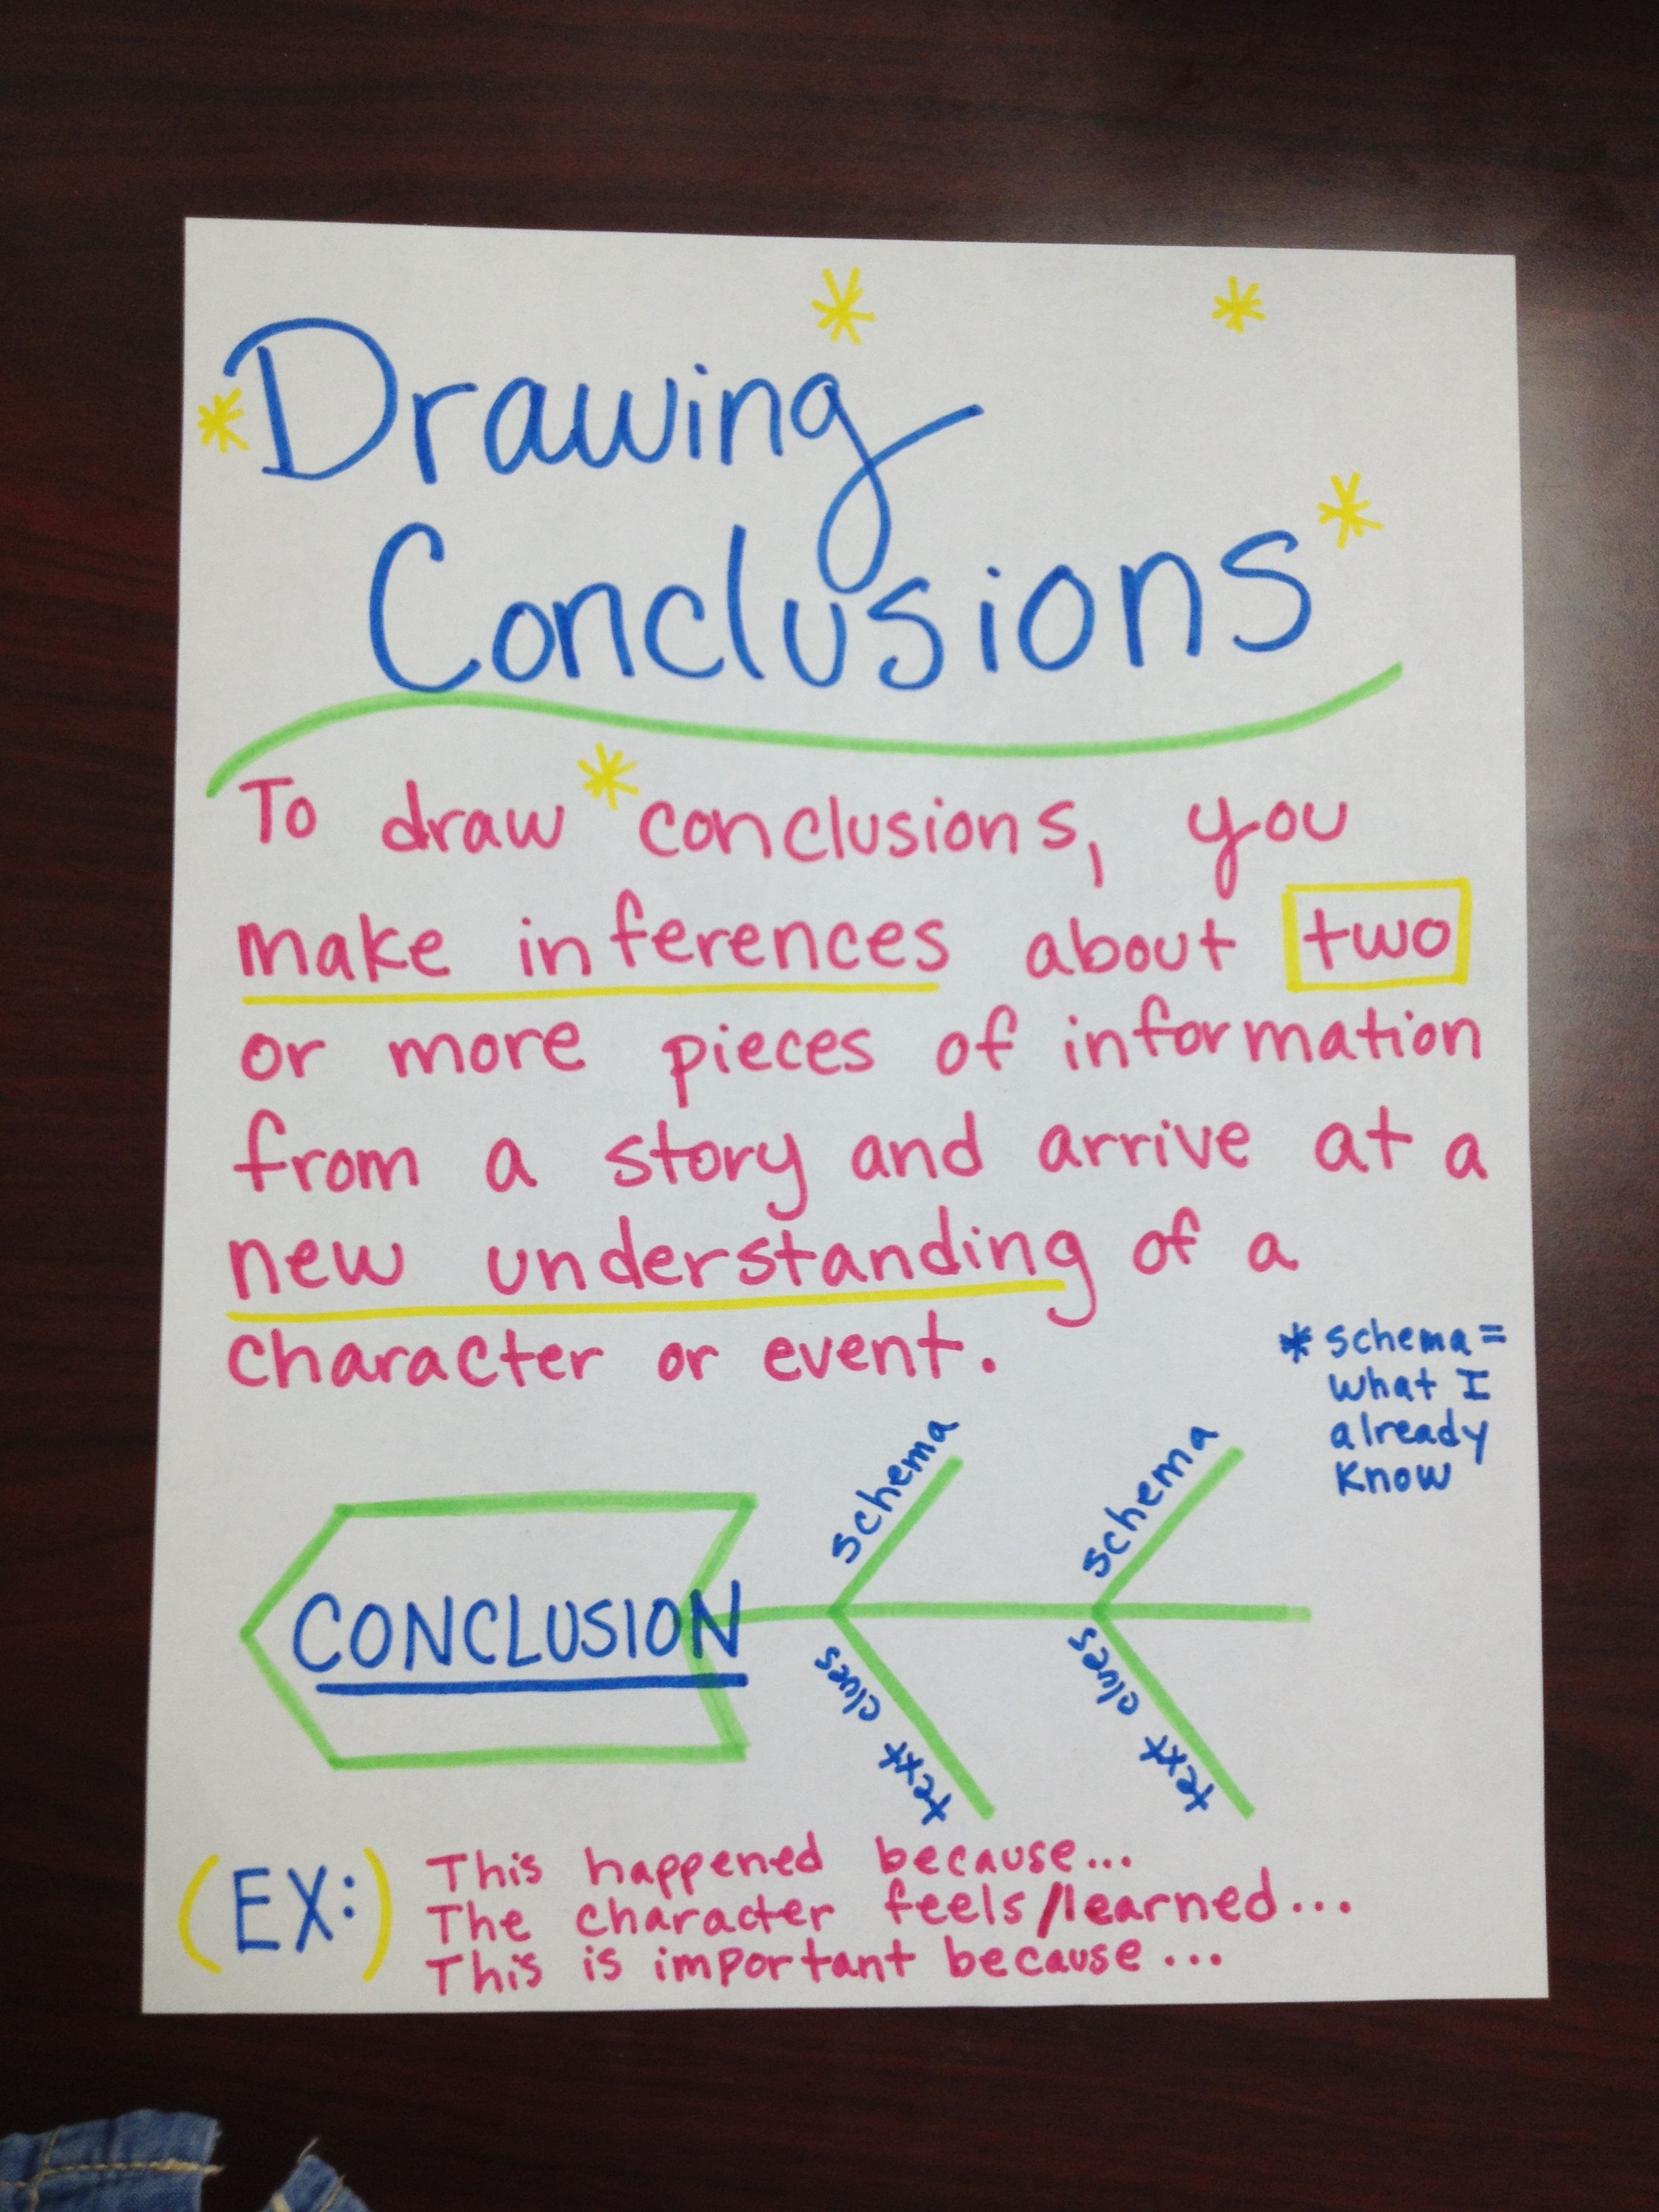 Drawing Conclusions Booklet School Pinterest